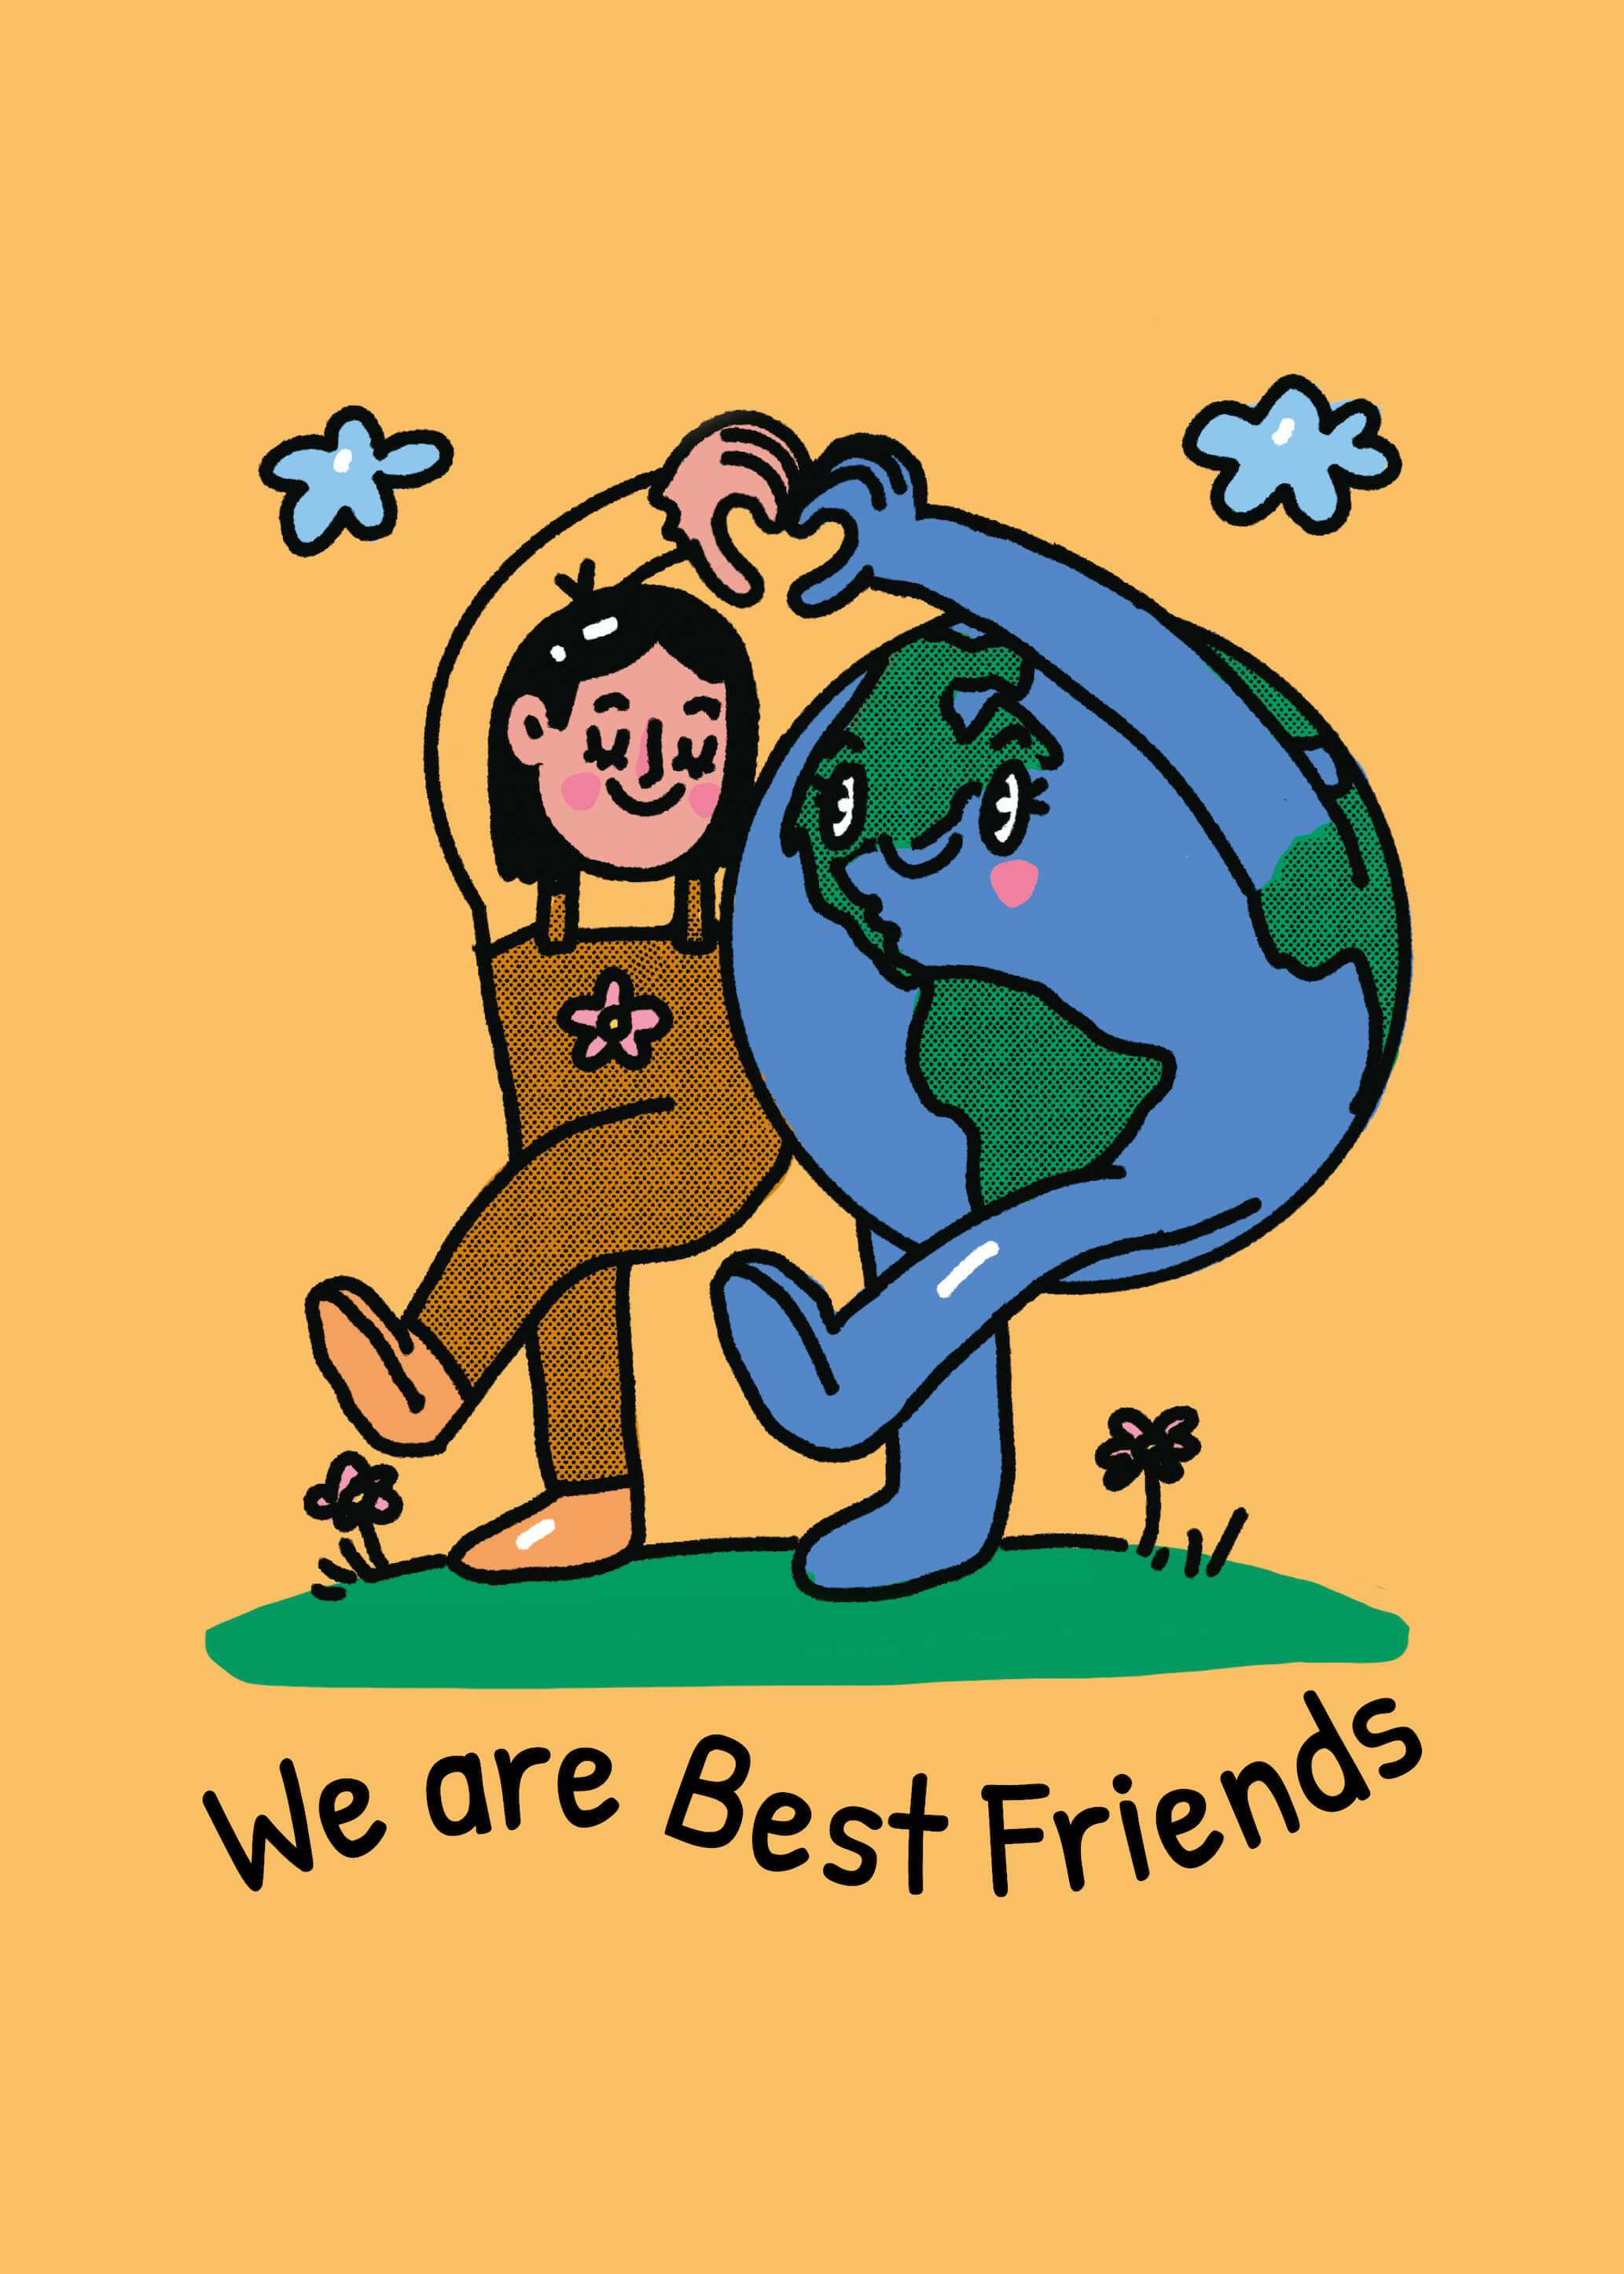 We Are Best Friends main image